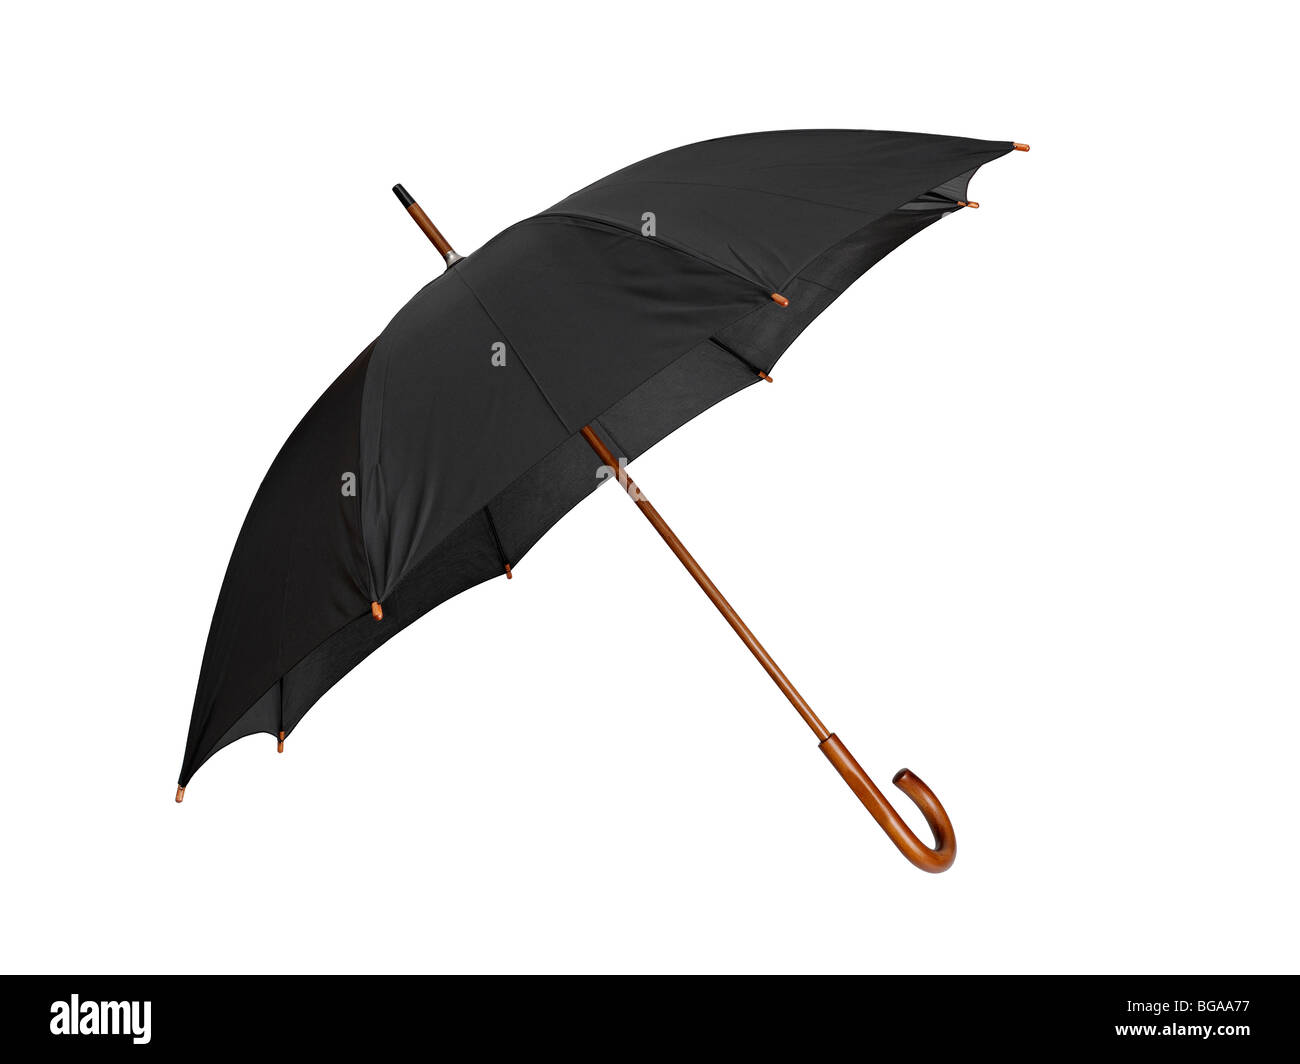 Umbrella - Stock Image